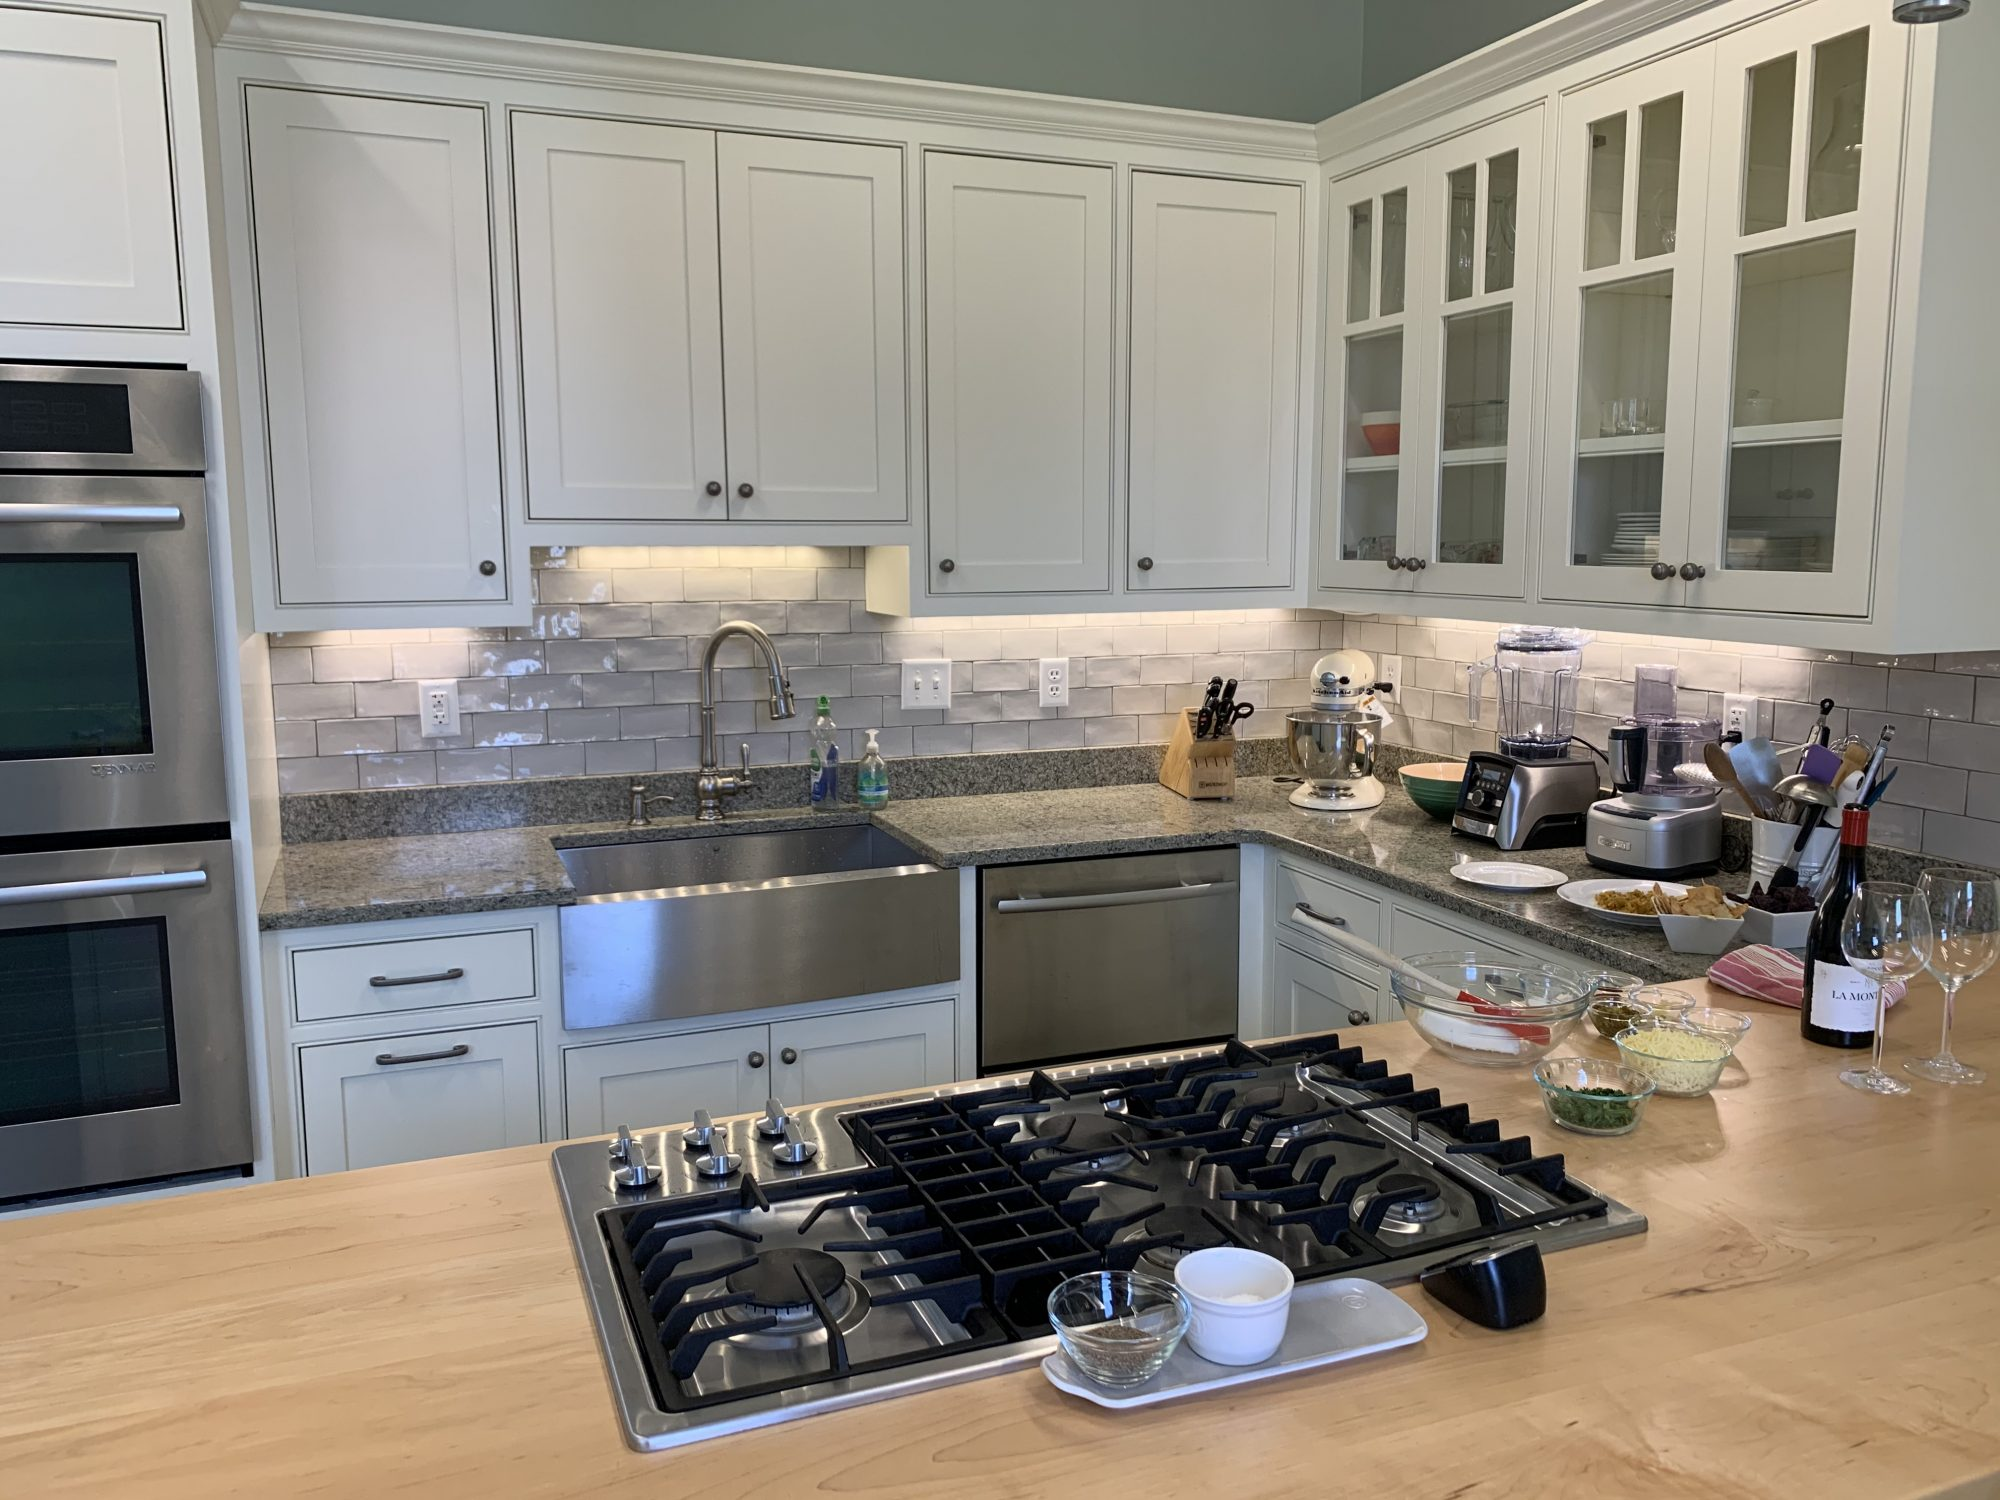 bright kitchen with cream colored cabinets and prepped food on a wooden counter